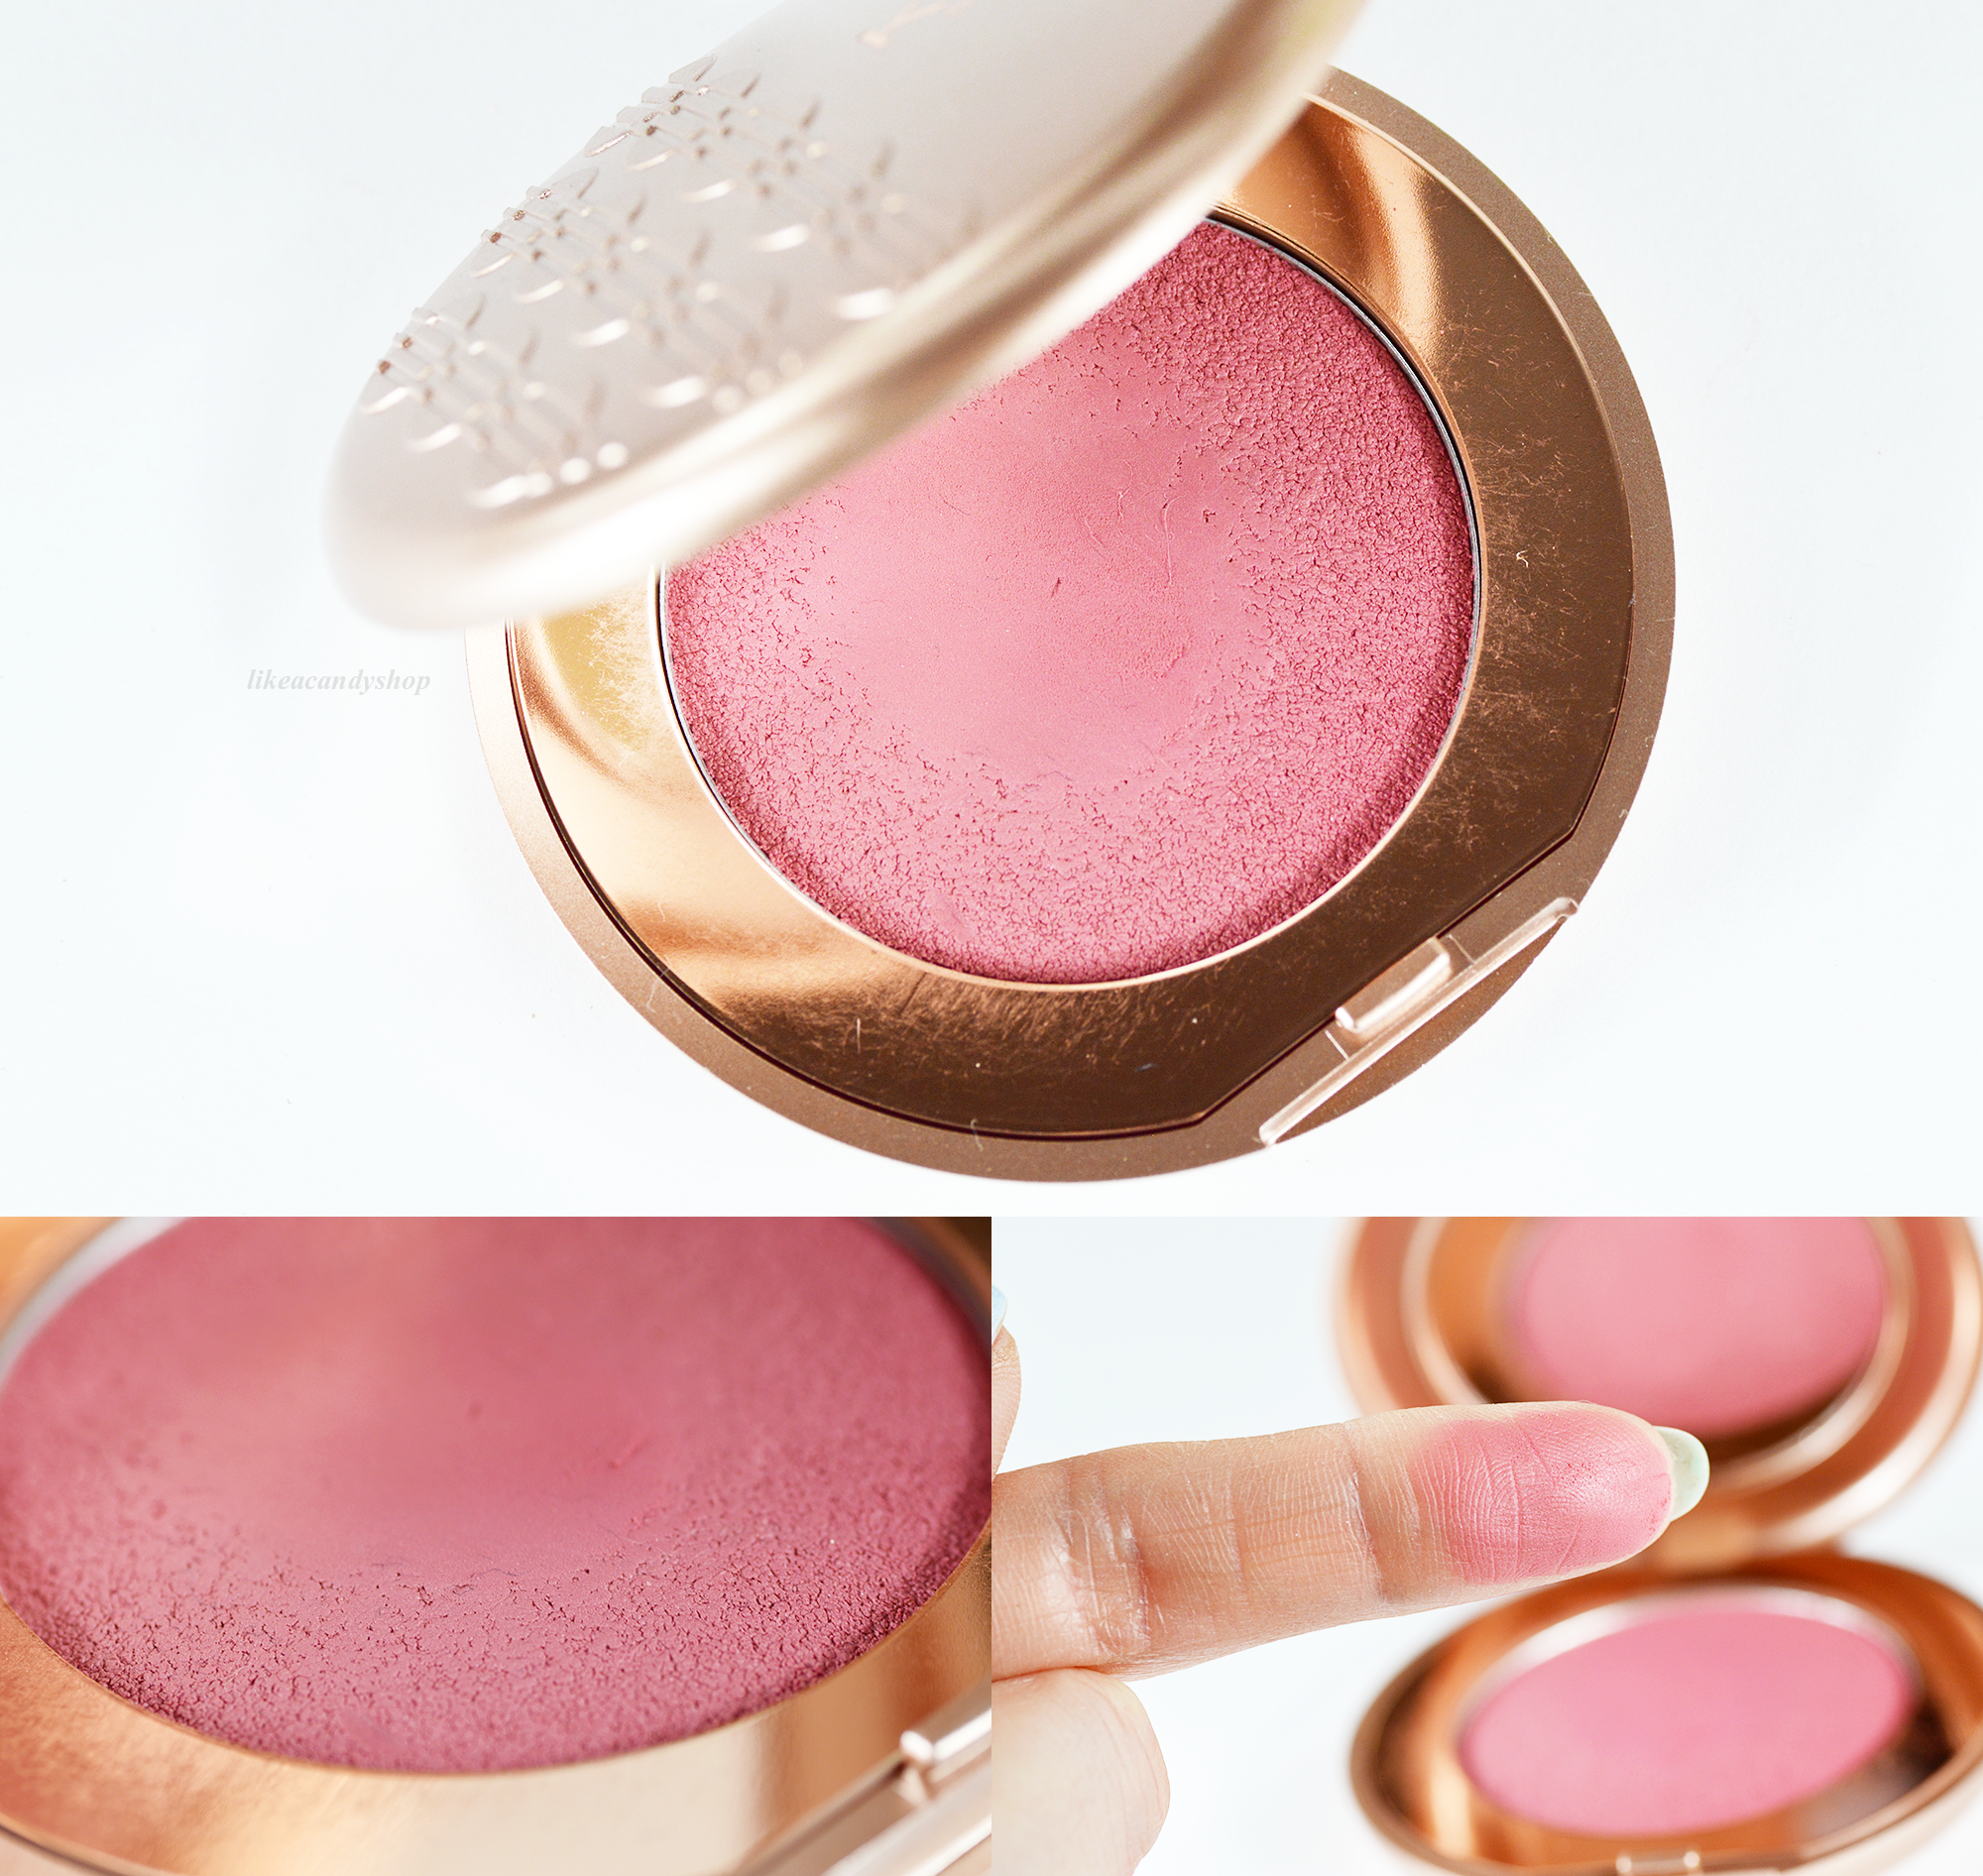 kiko rebel bouncy blush 03 treasure rose x